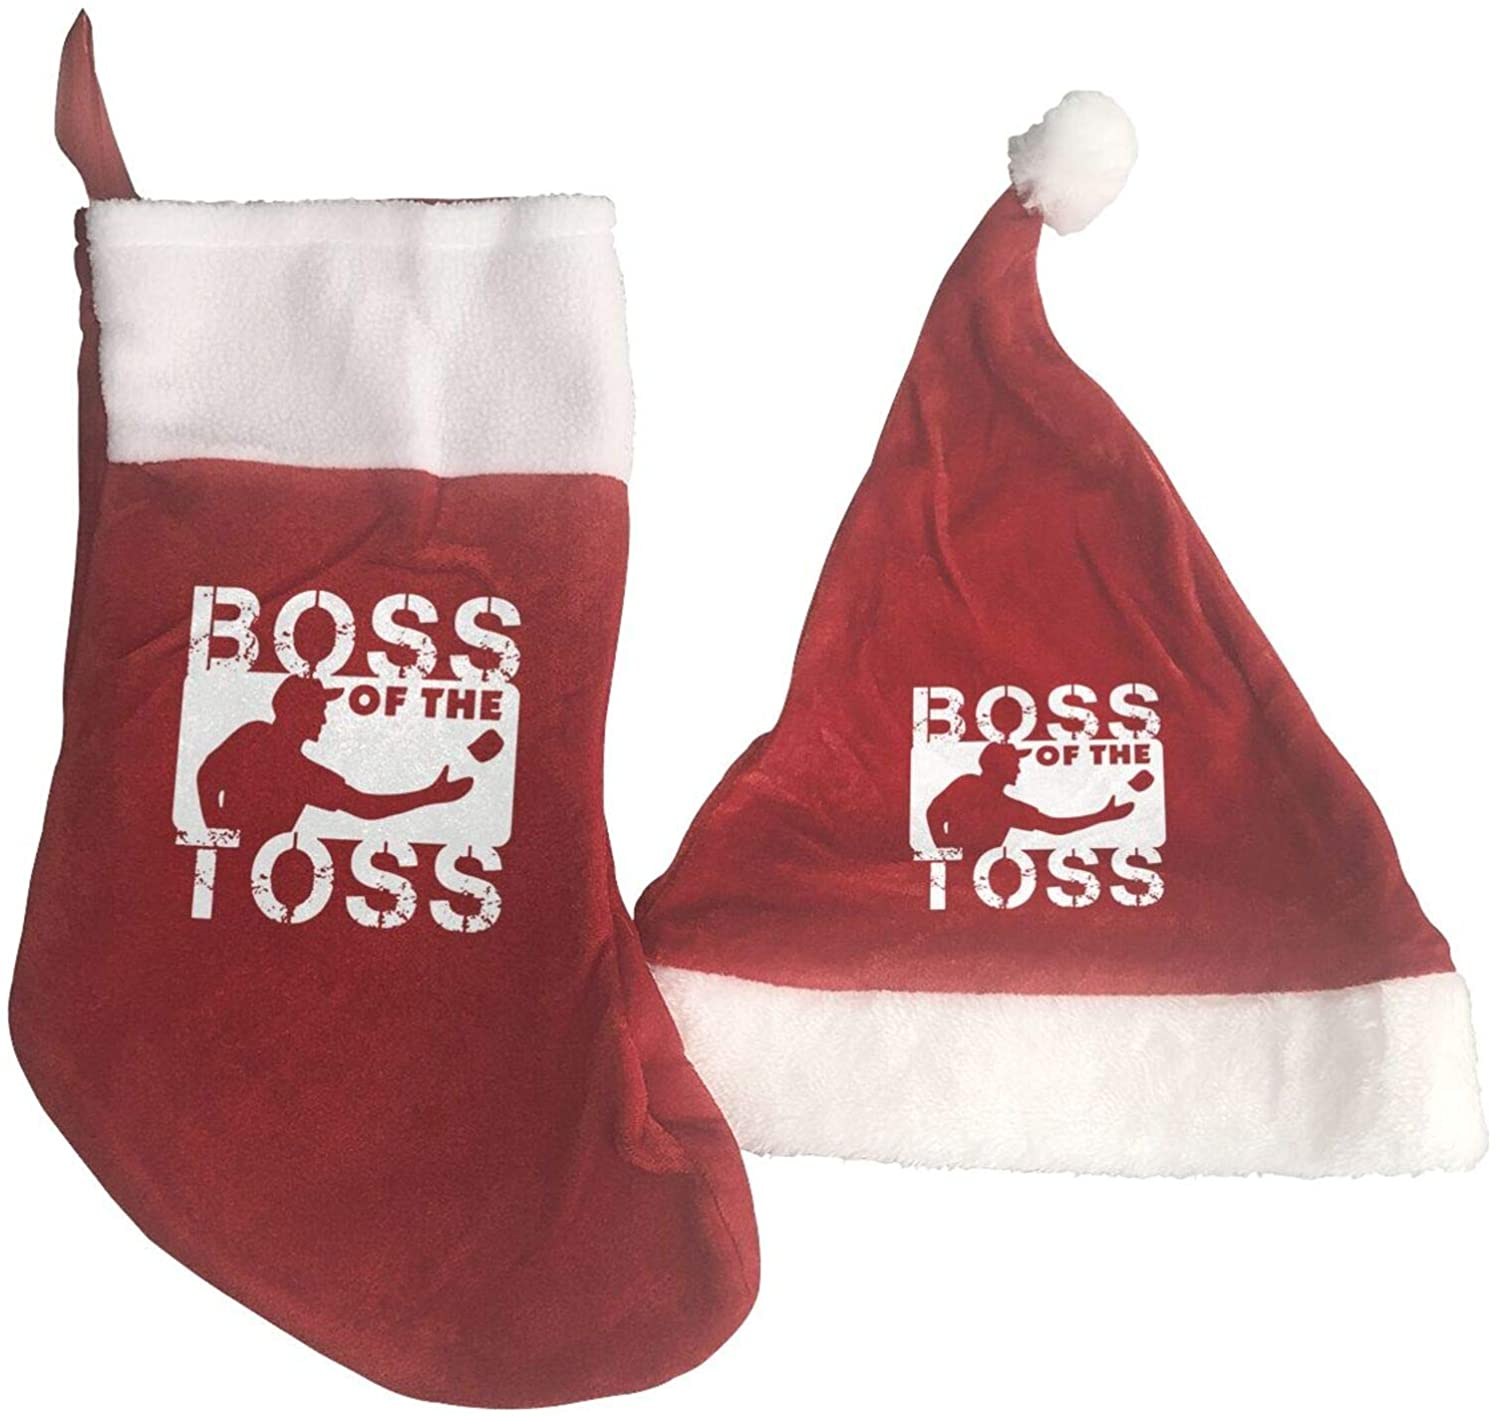 Boss Of The Toss Cornhole Christmas Hat Christmas Stocking Ornaments And Family Holiday